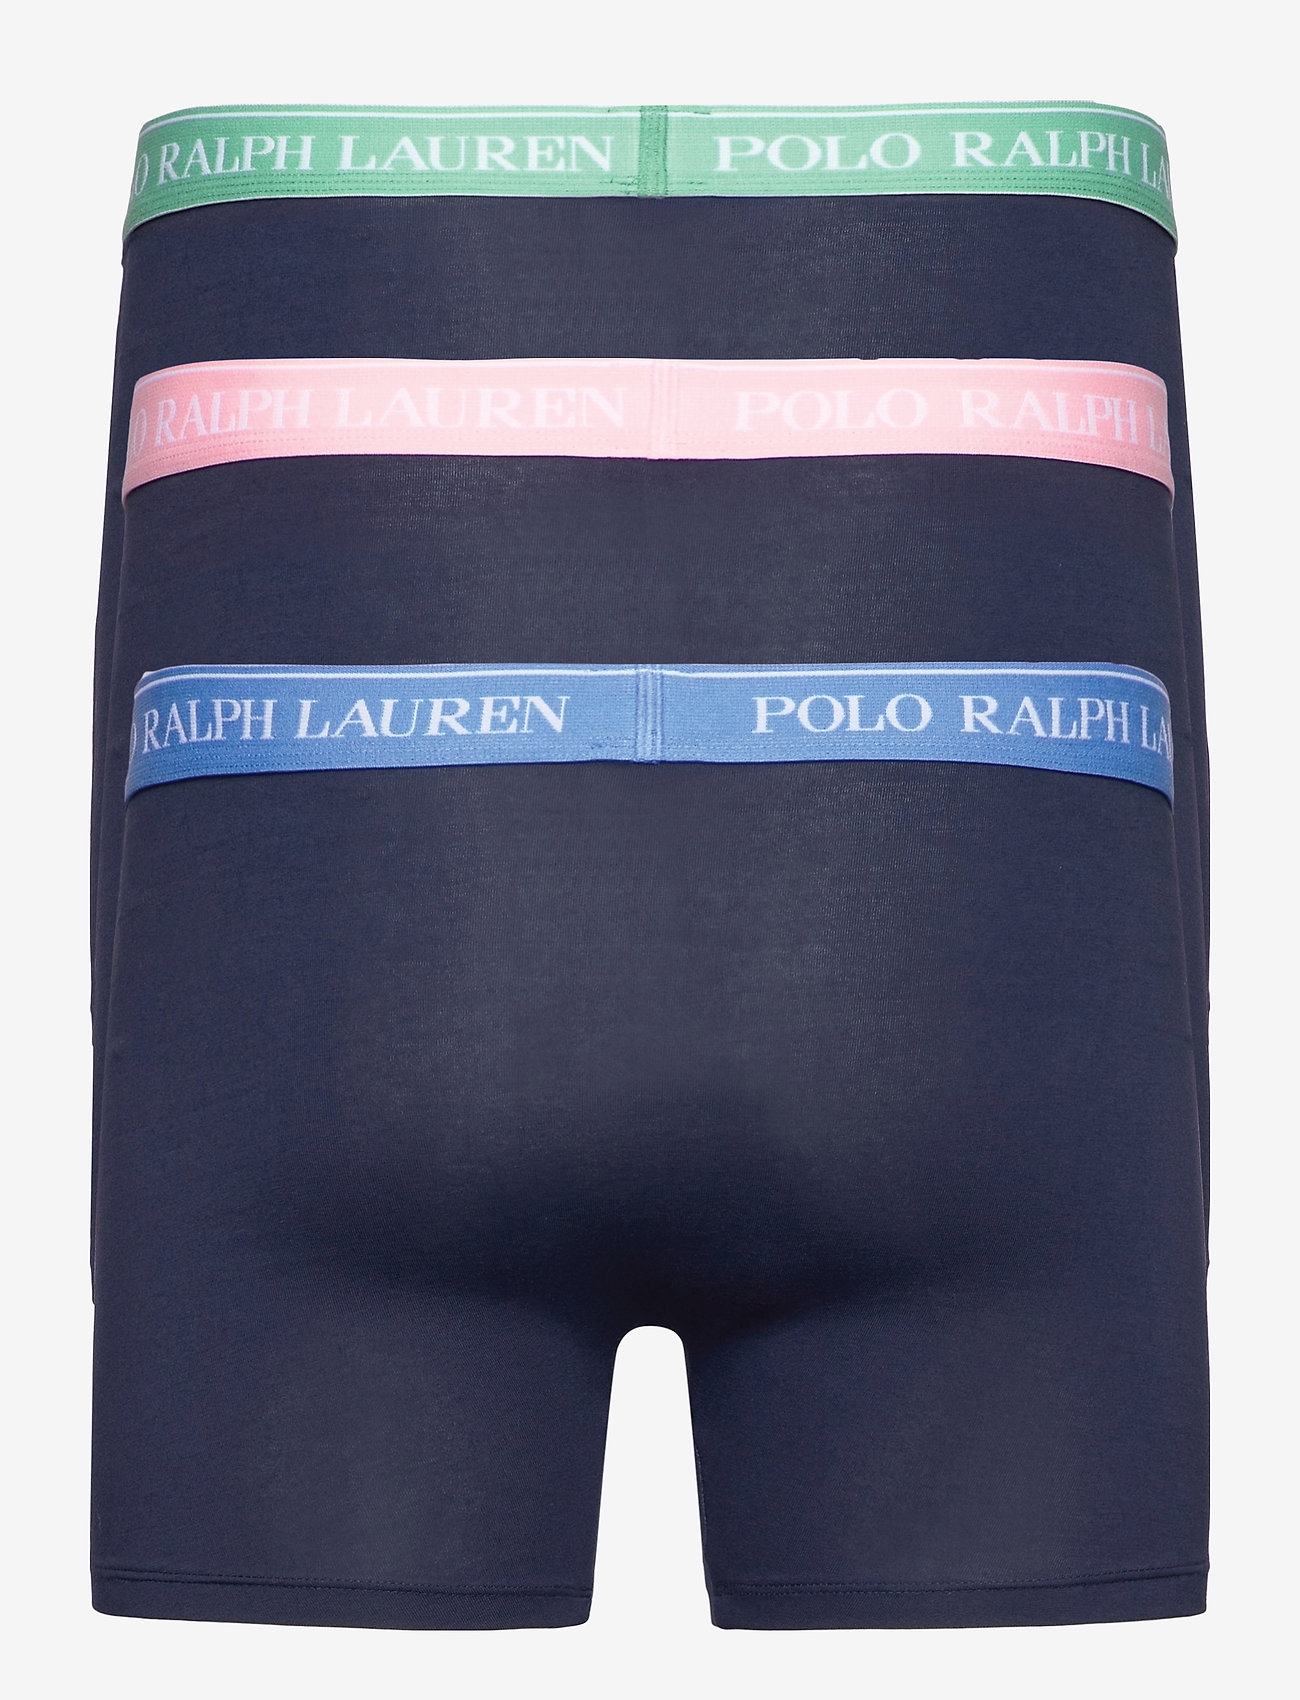 Polo Ralph Lauren Underwear - Stretch Cotton Boxer Brief 3-Pack - boxers - 3pk nvy blu/nvy p - 1